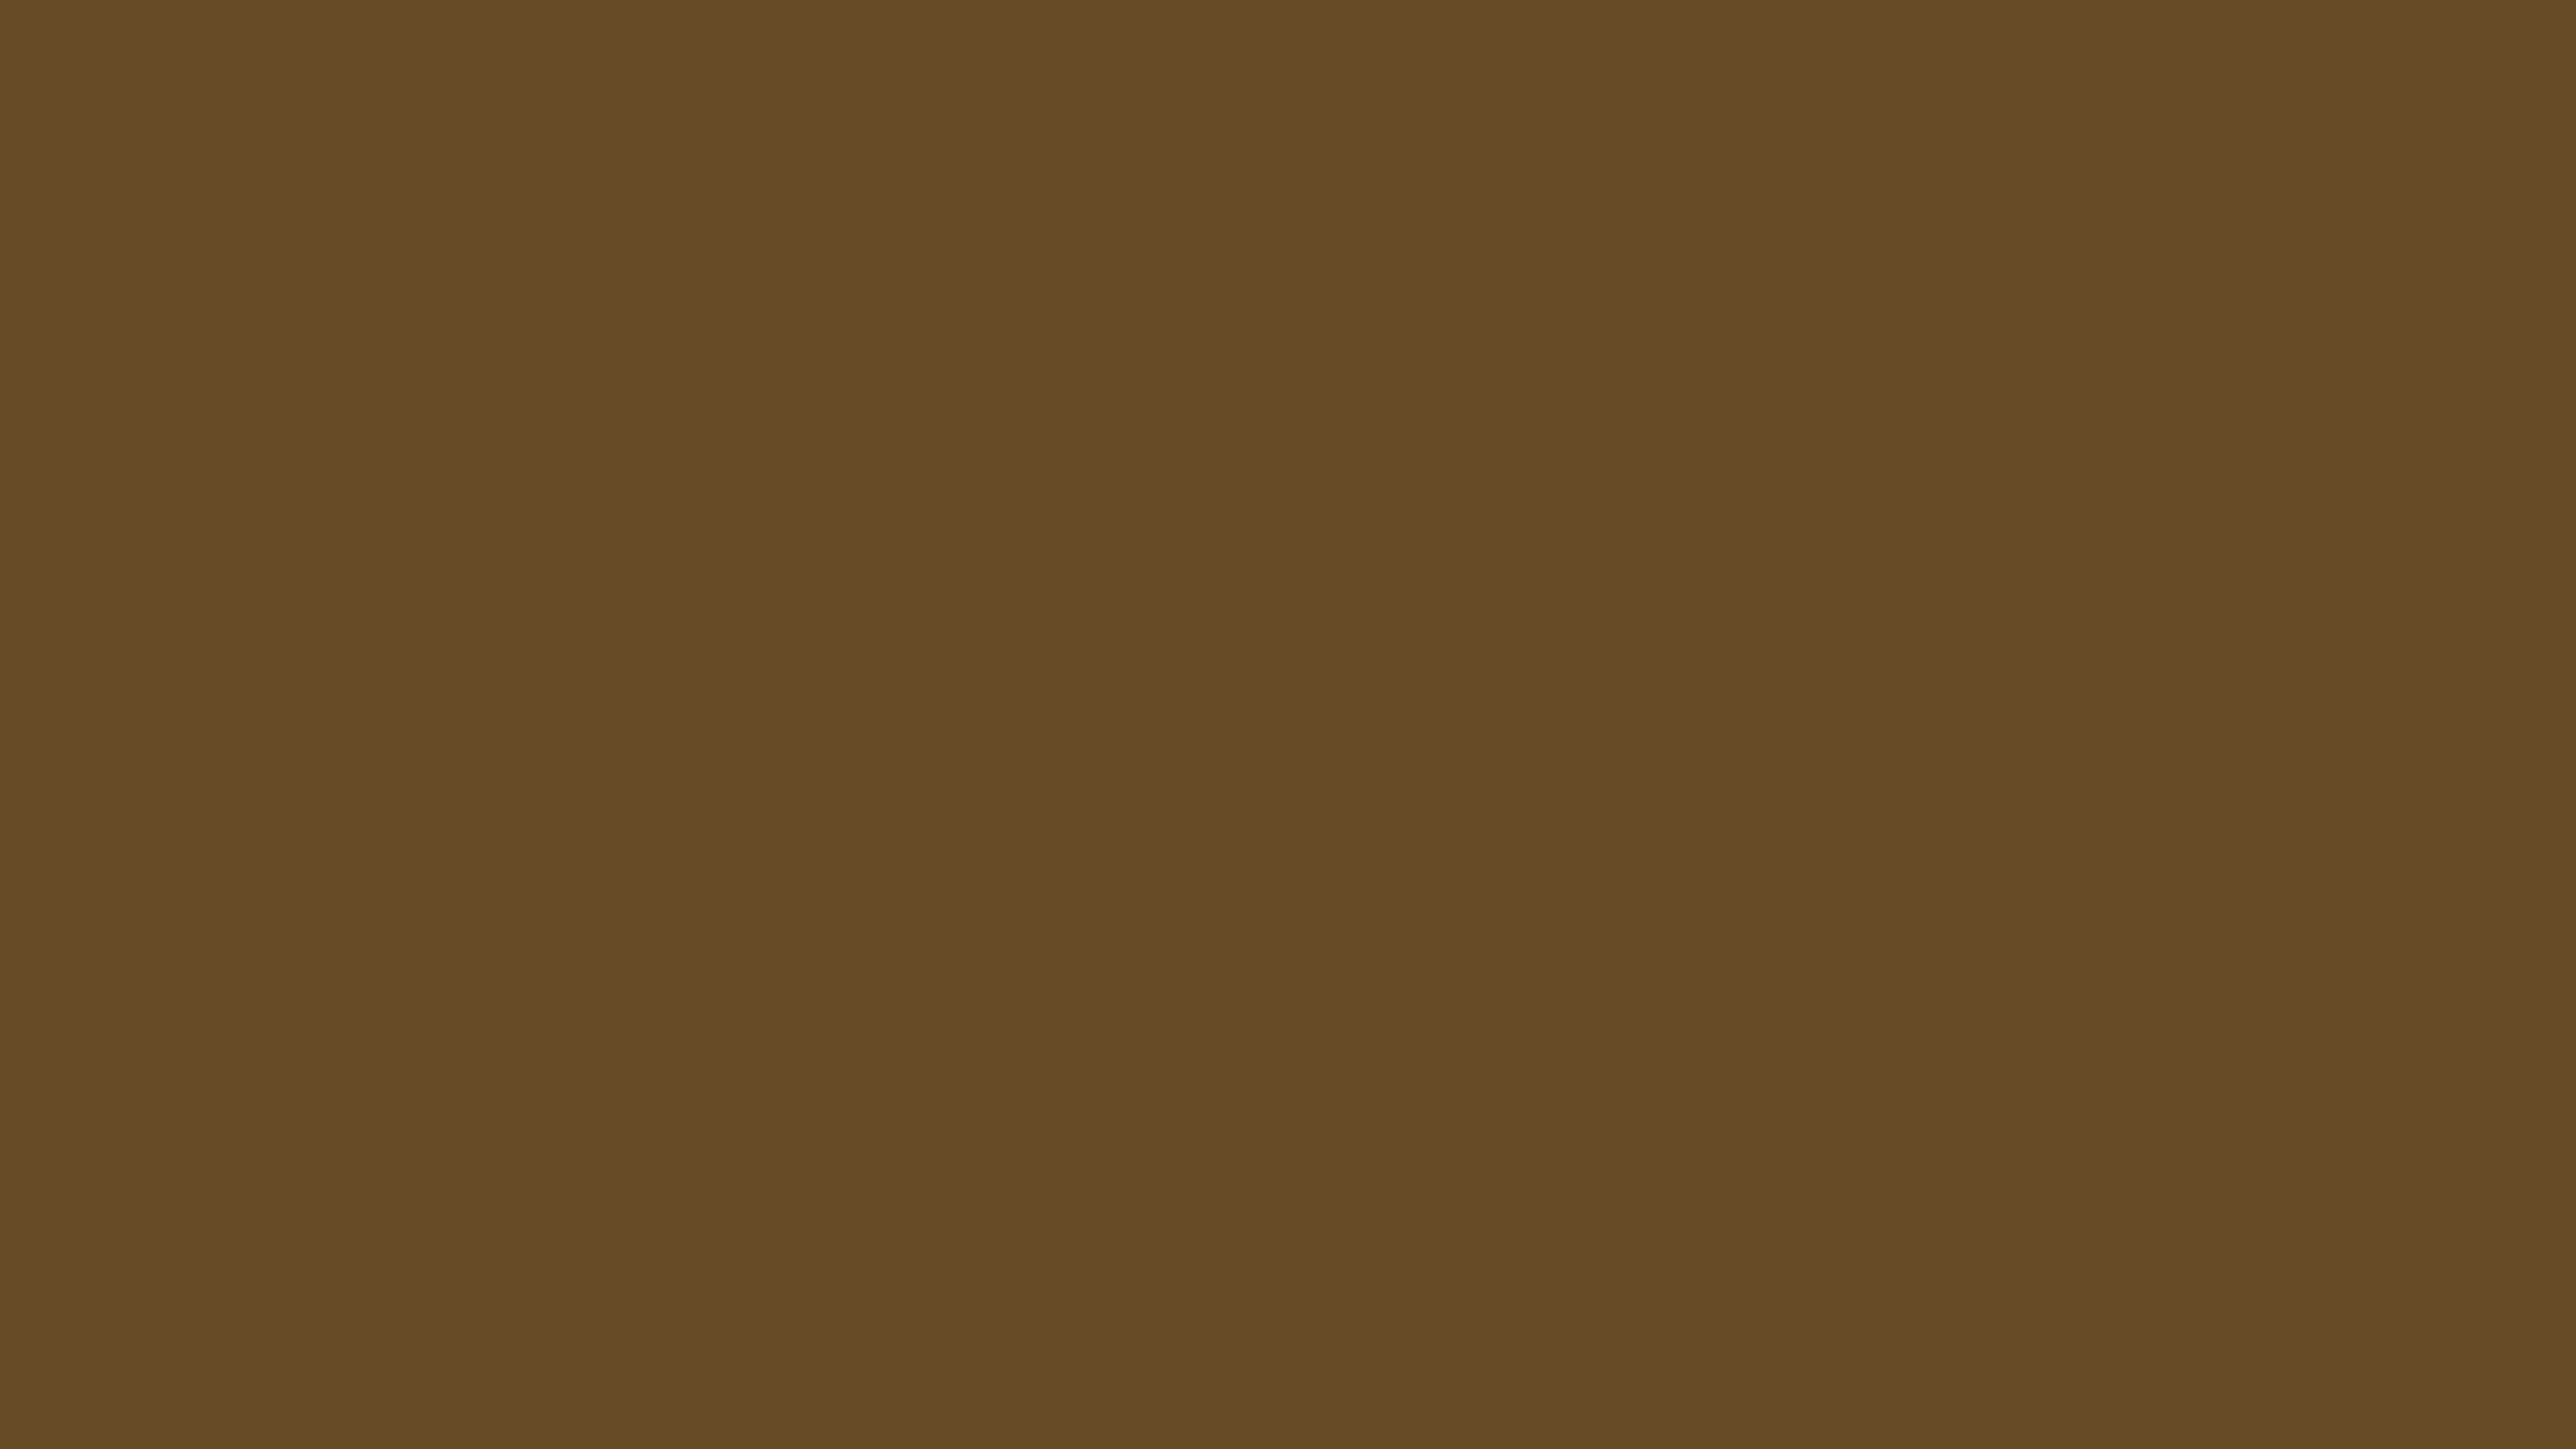 3840x2160 Donkey Brown Solid Color Background